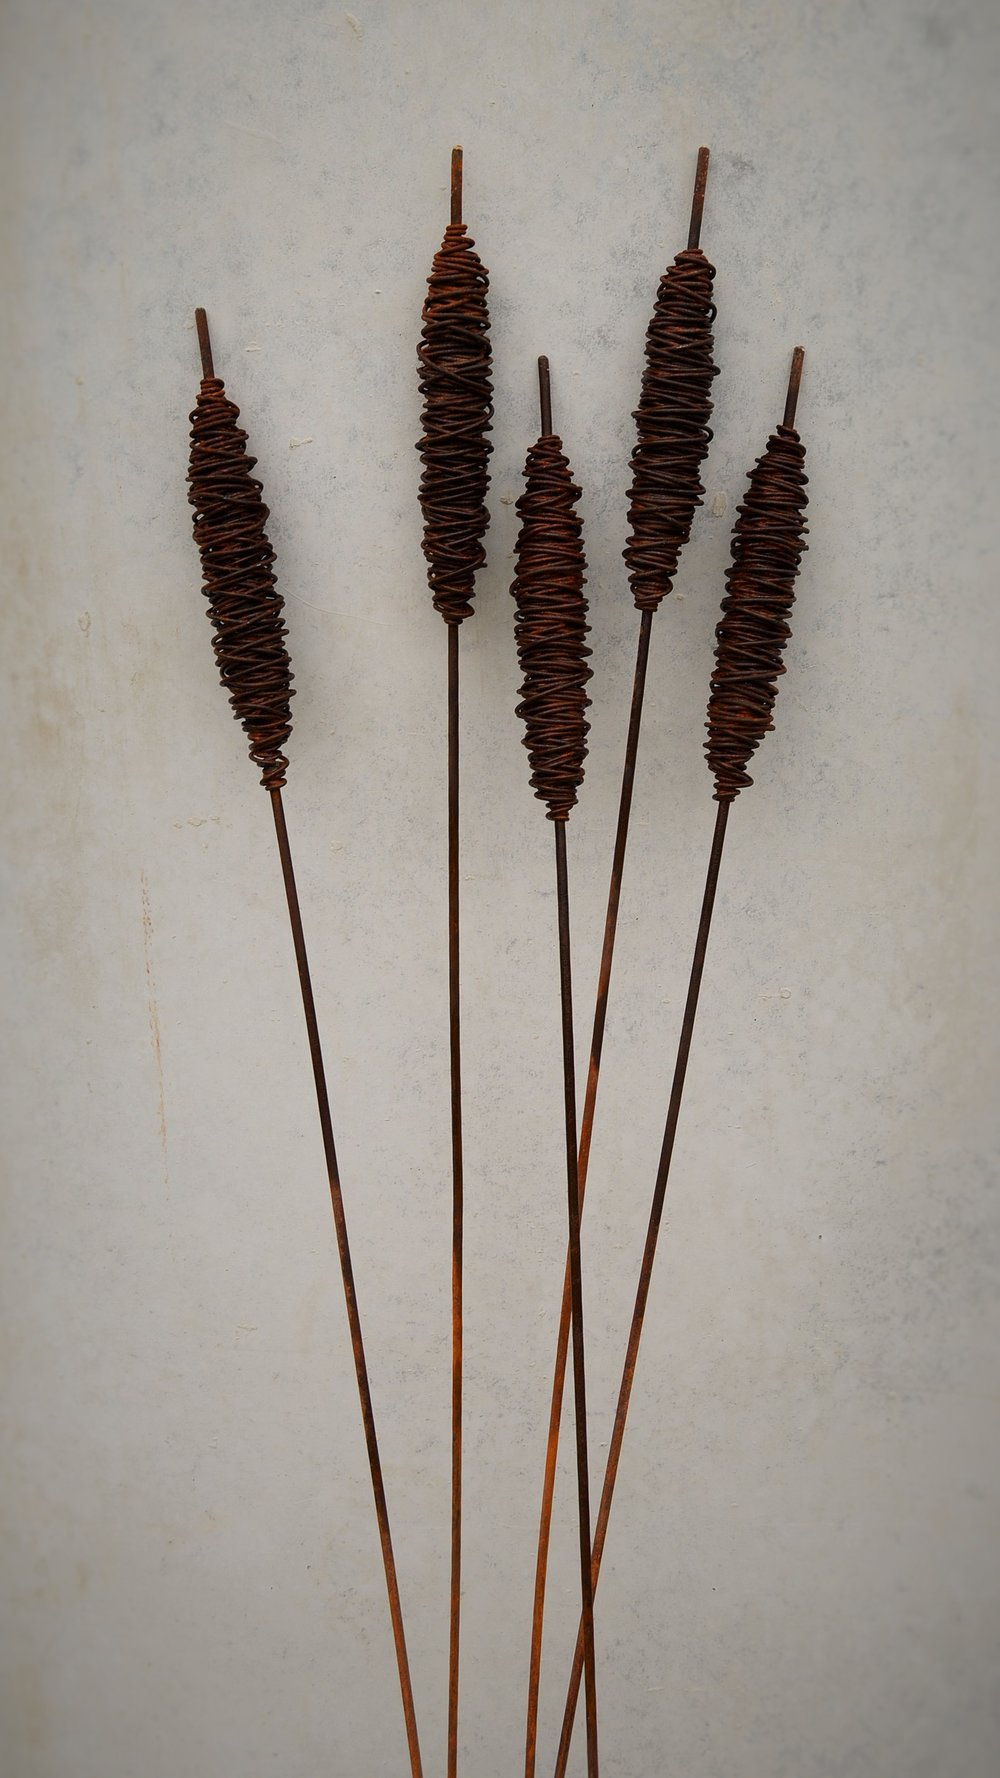 Rusty Bulrushes (8 available)  Grounded Art Nz, 1500mm tall  $70.00 ea